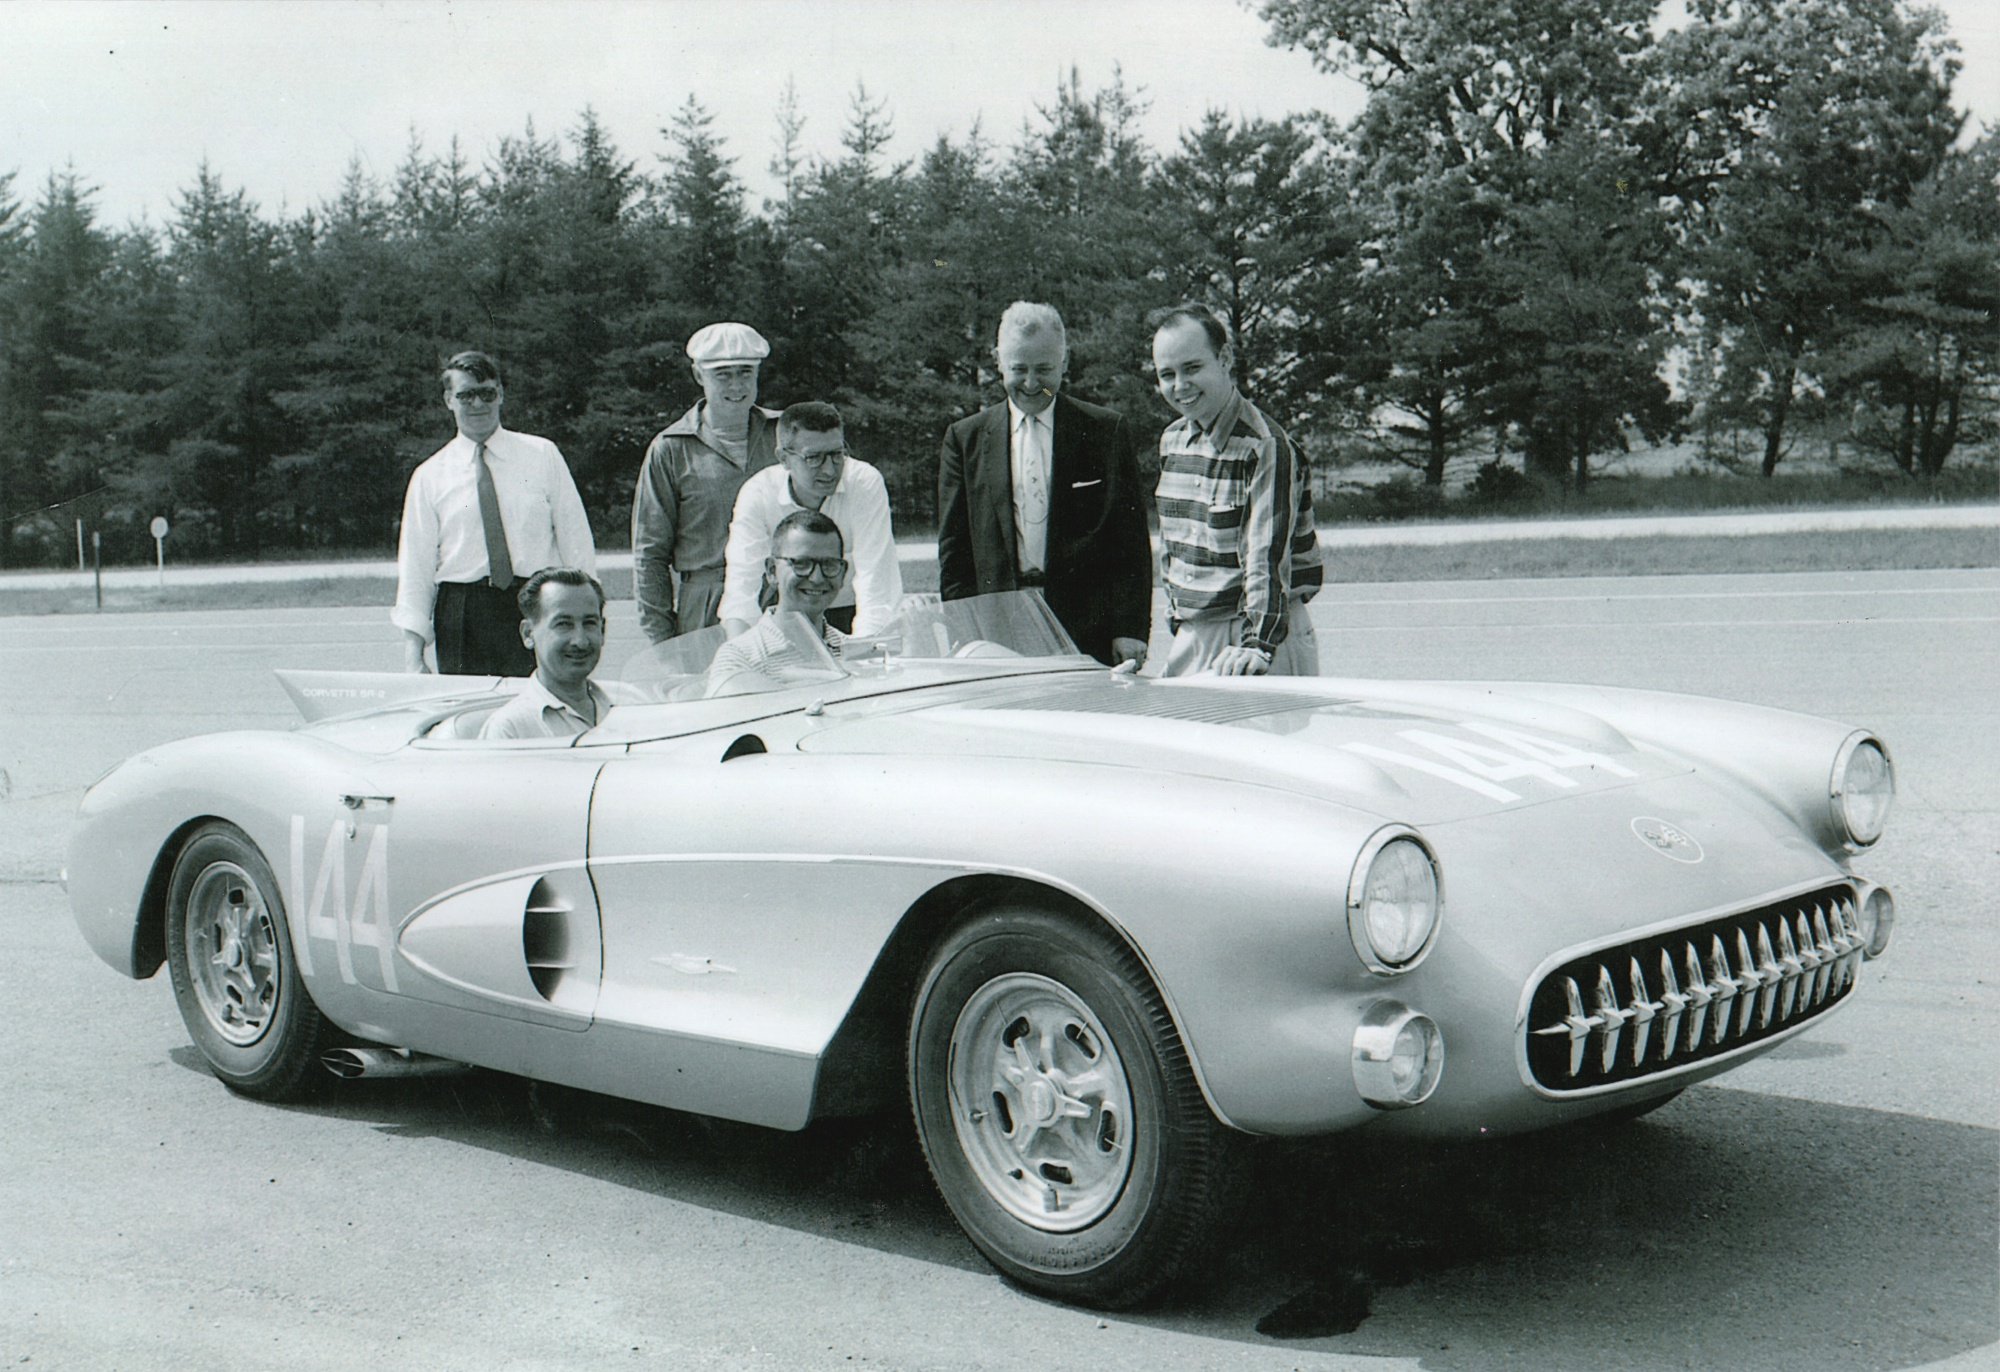 relates to A Front-Row Seat to 70 Years of Automotive Design